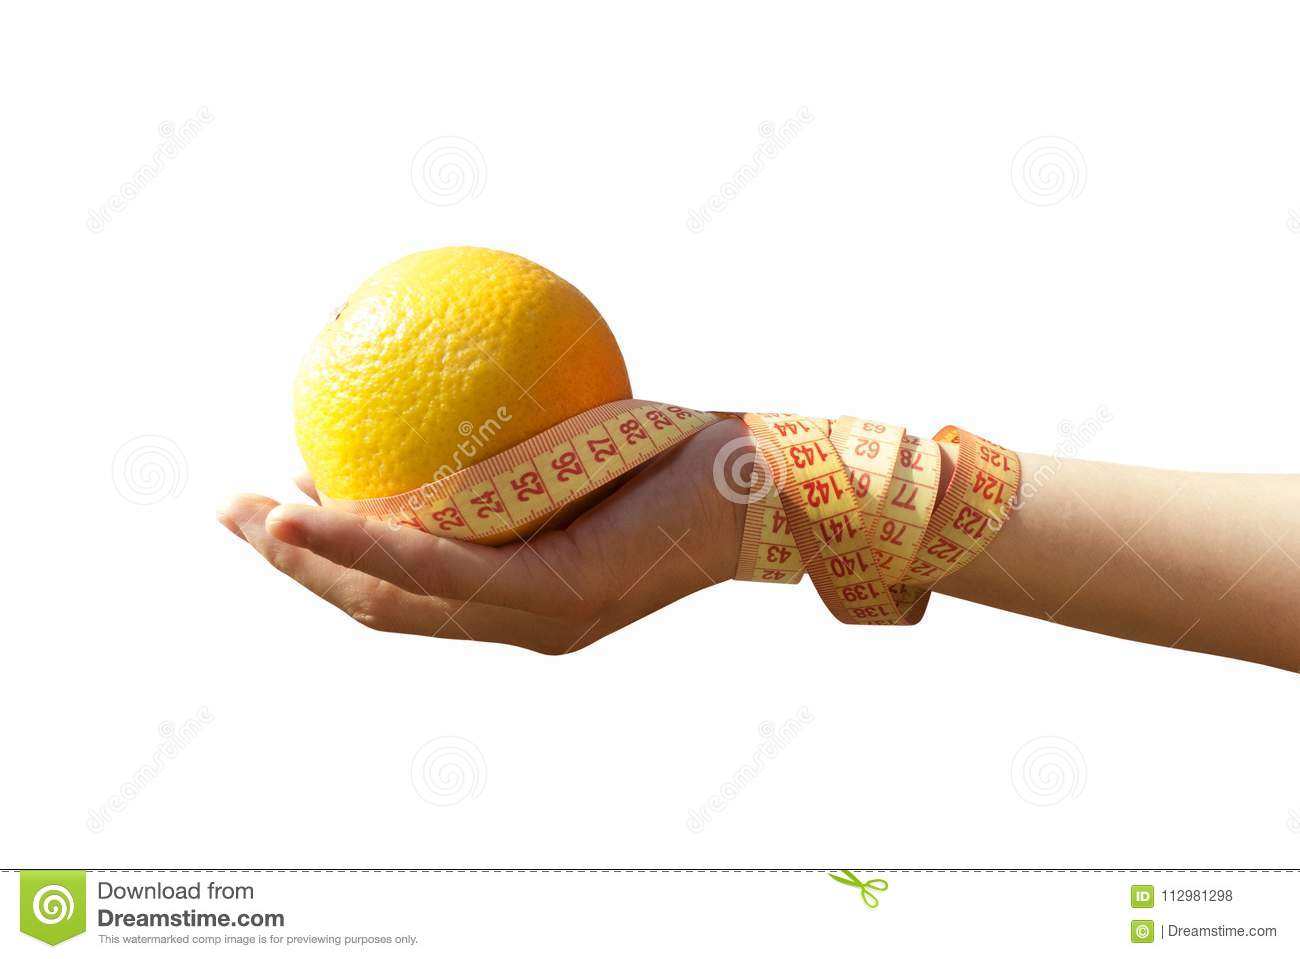 Orange and tape measure in hand on a white background